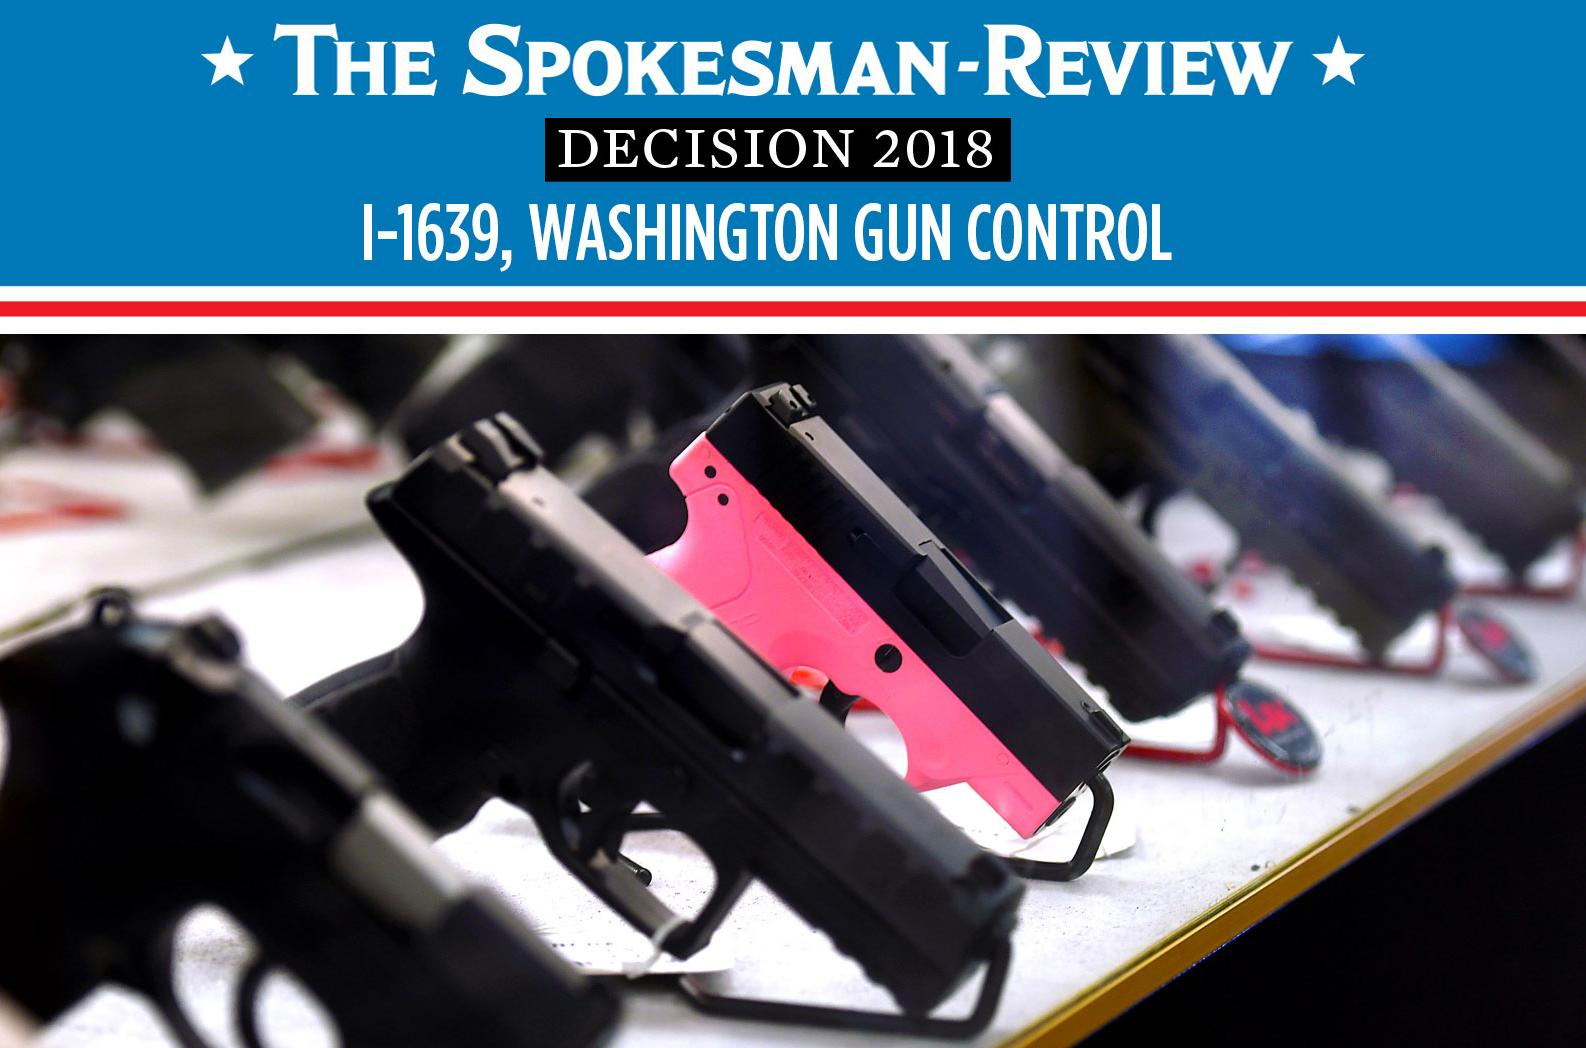 I-1639, which creates restrictions on semiautomatic rifles, passes